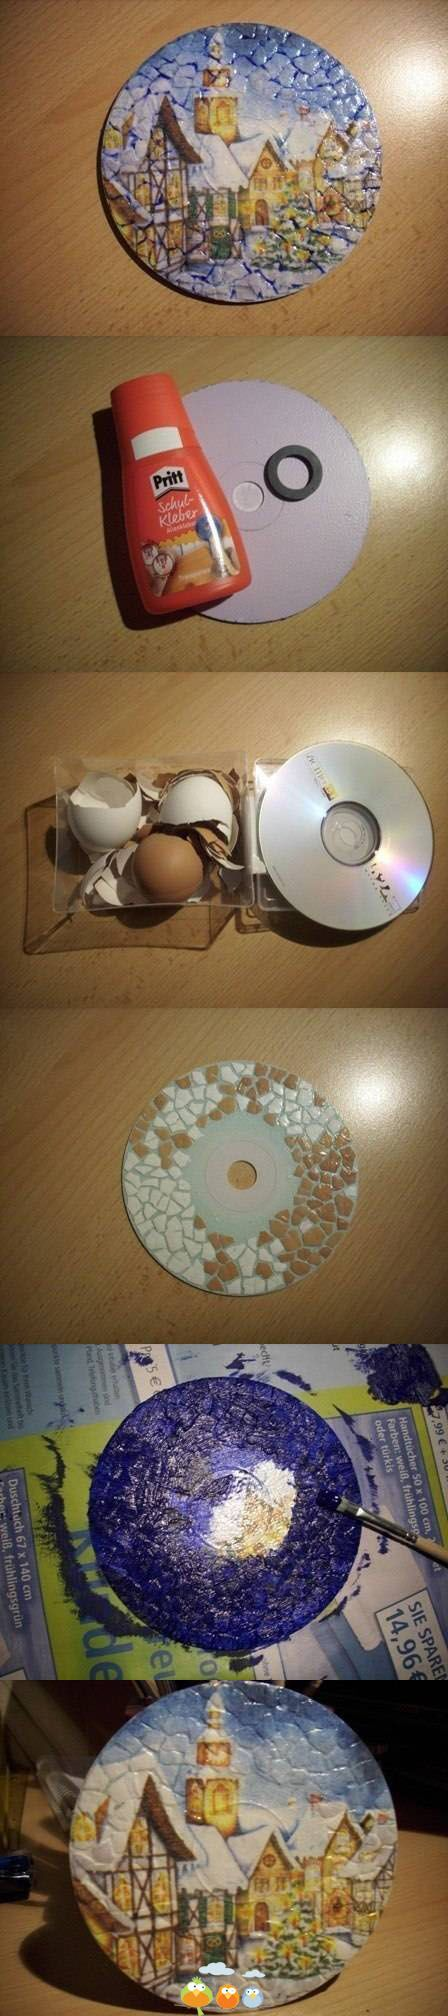 Photo tutorial (limited) on how to make a mosaic picture recycling an old CD and crunched up egg shells (for texture), and painting a scene on the CD textured surface...thinking you could decoupage a picture as well, if it was thin enough quality to maintain the mosaic texture surface, maybe: